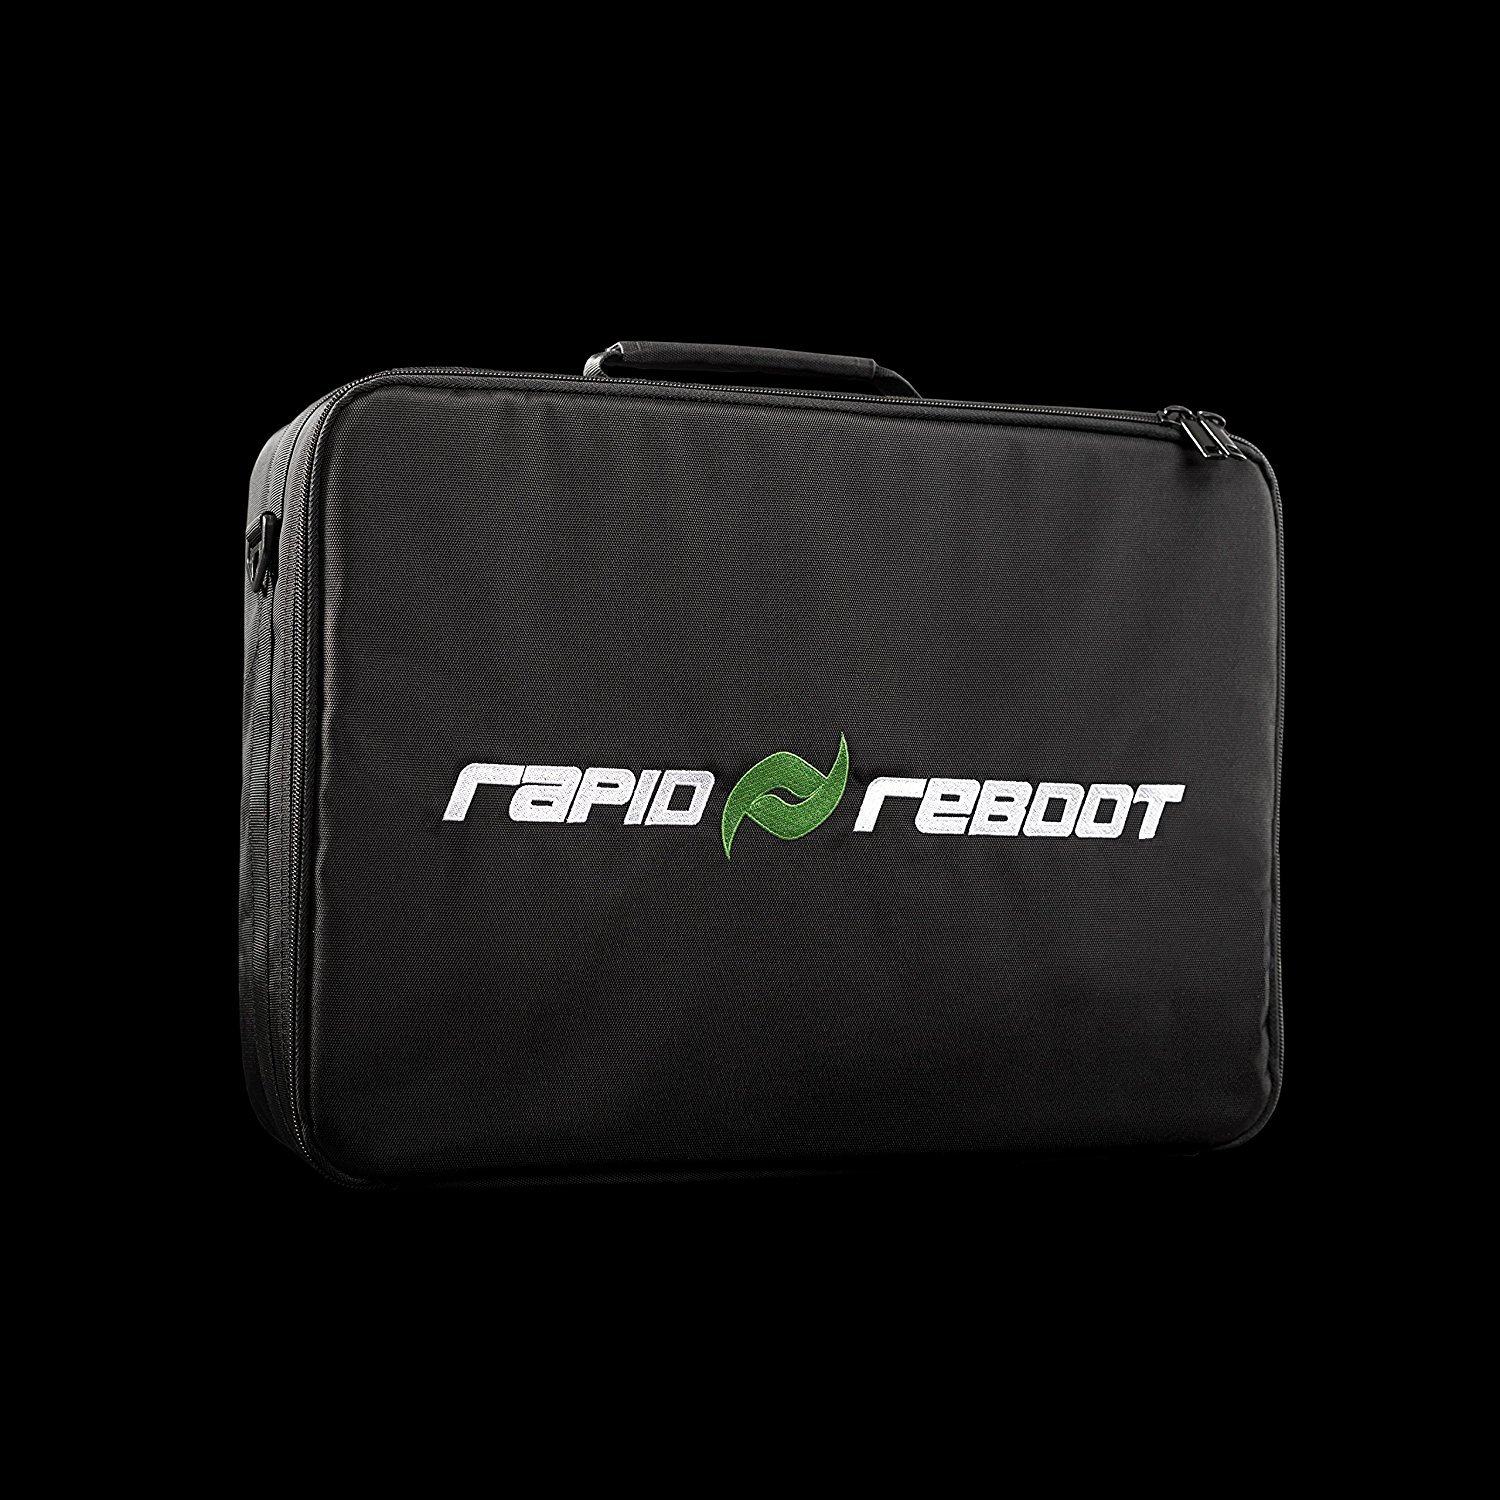 Rapid Reboot Recovery Travel Case: Travel Case for recovery attachments and pump. Air compression therapy for improved circulation, fast workout recovery for runners, & other athletes. (XL, L, M, S) by Rapid Reboot